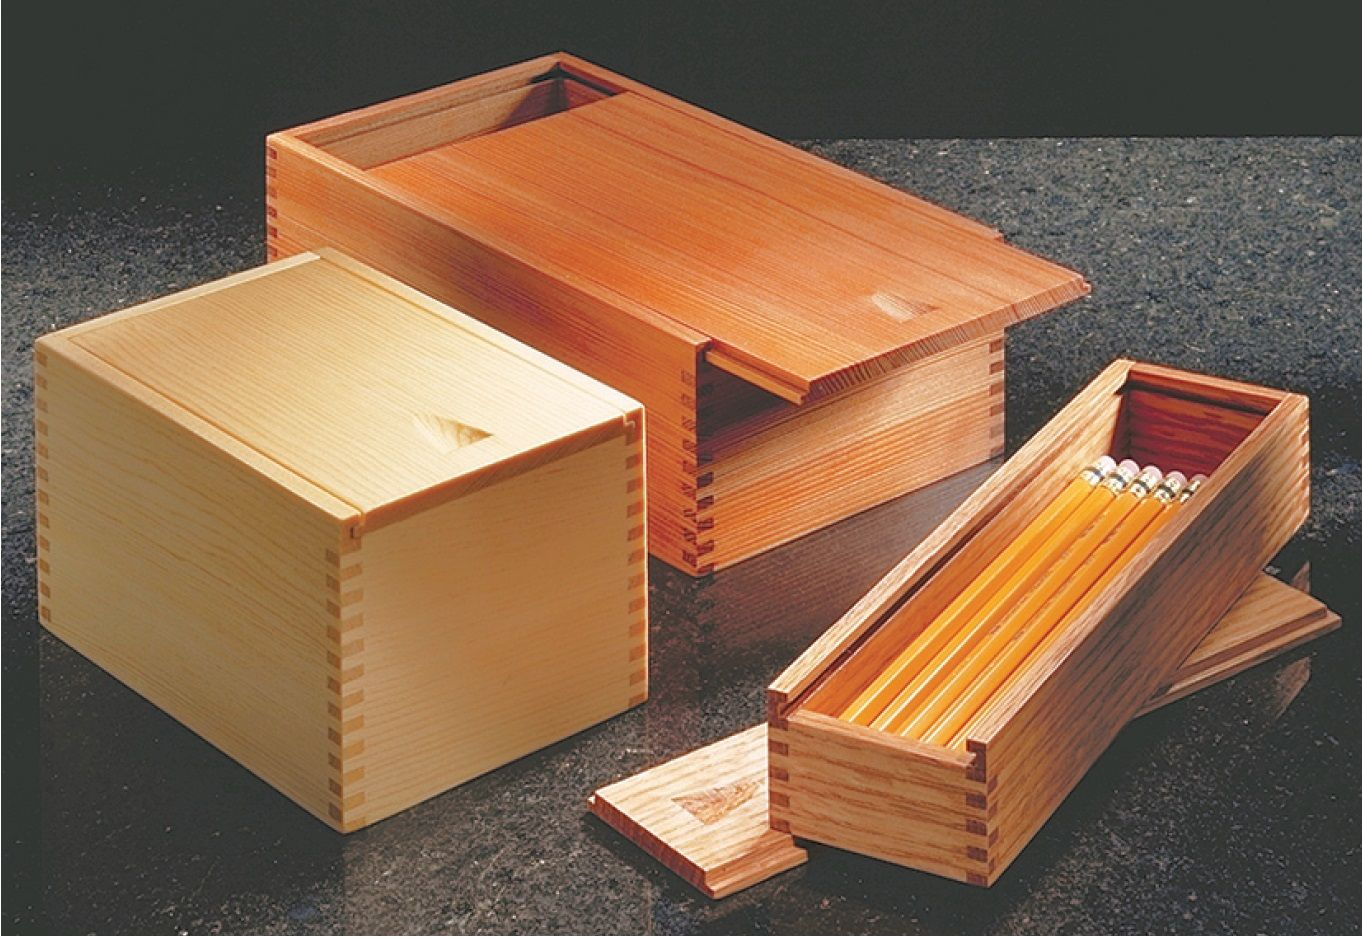 Sliding Lid Boxes Garden Landscaping In 2019 Wooden Box Plans